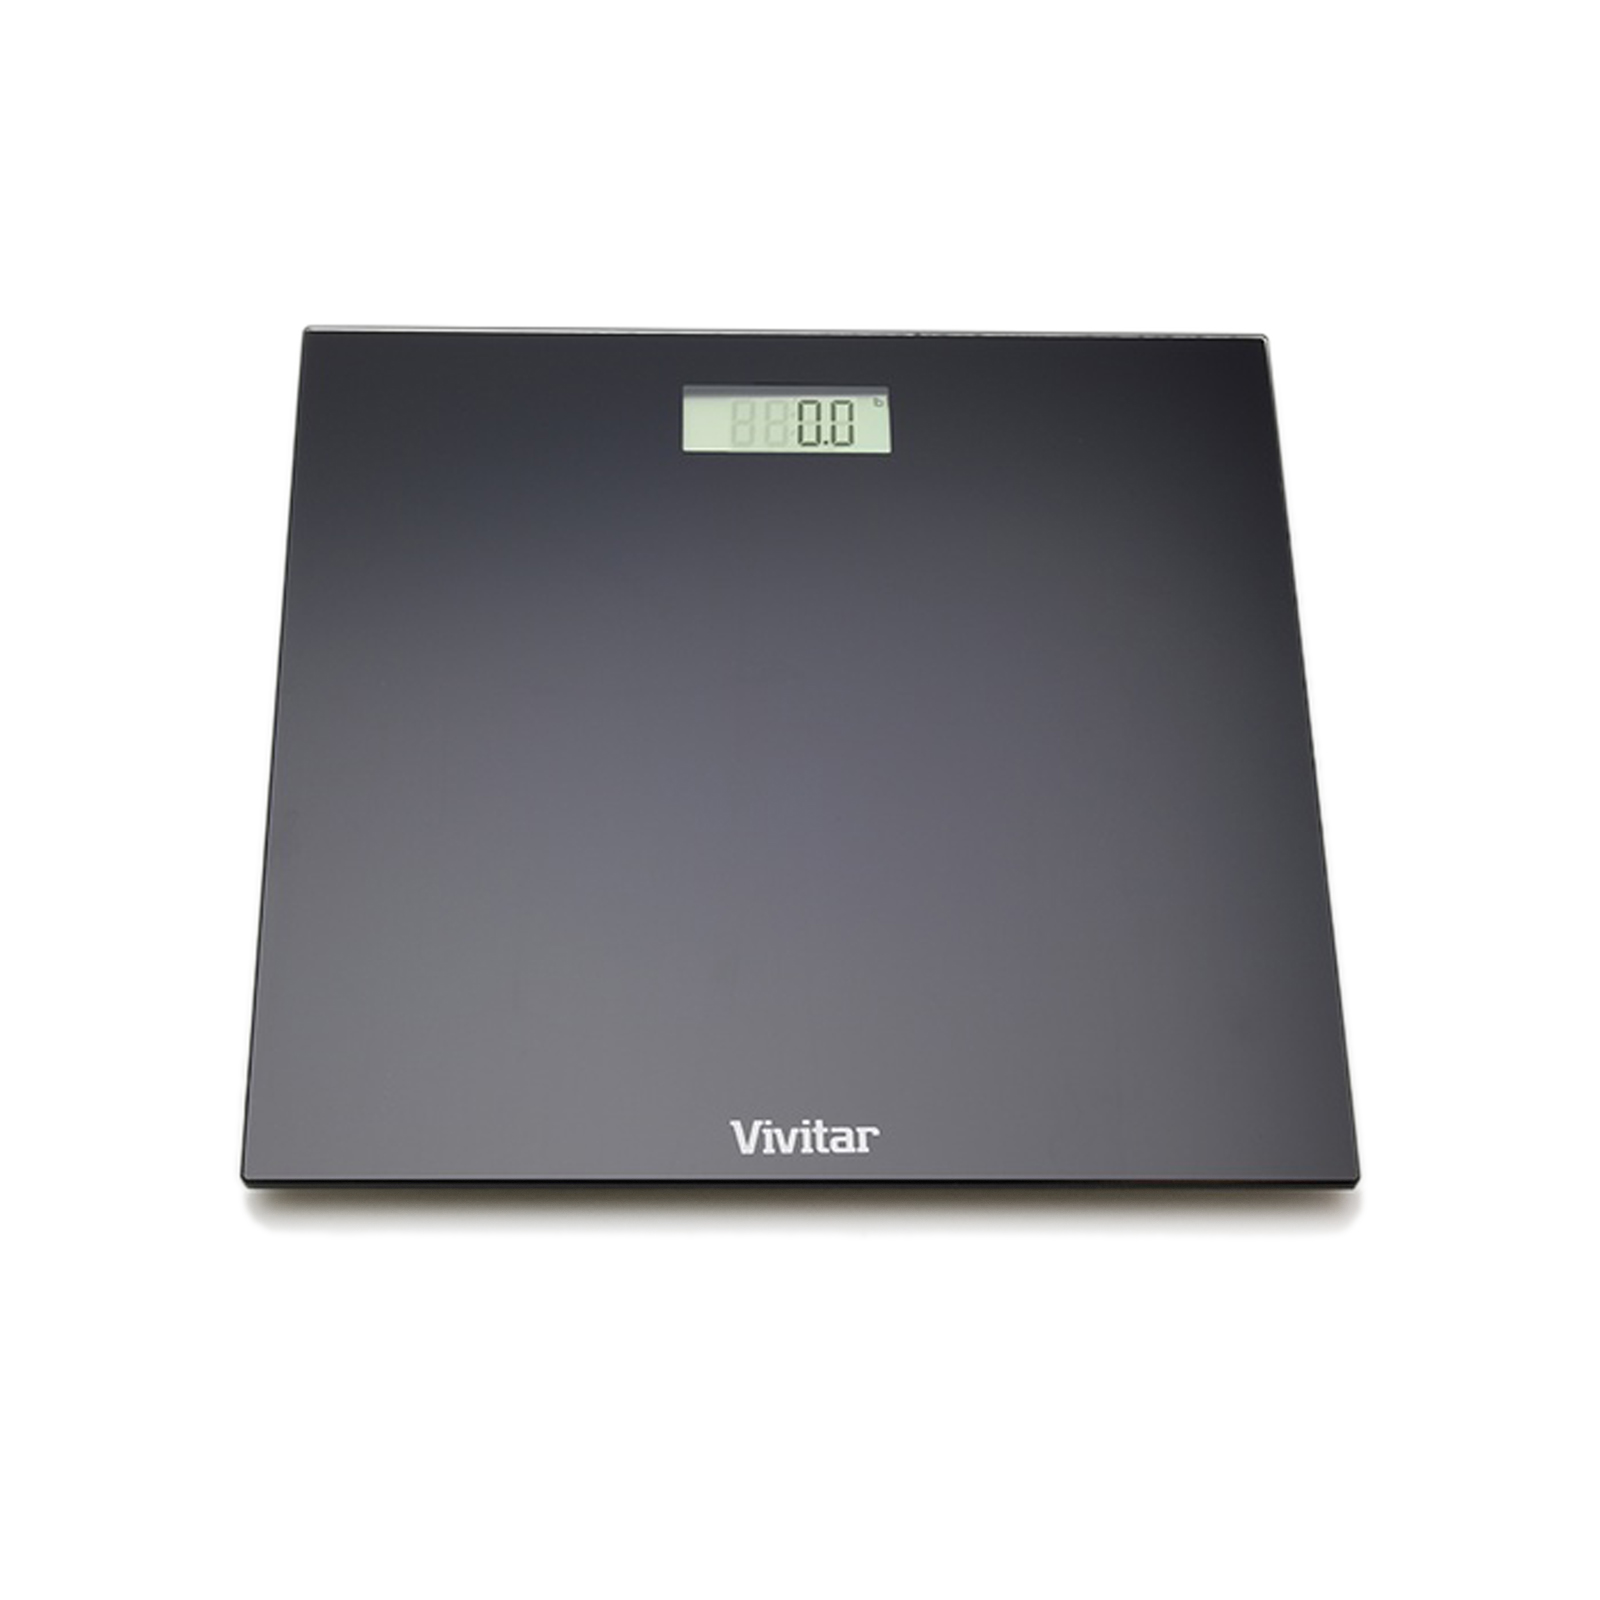 vivitar bodypro digital bathroom scale-black - walmart